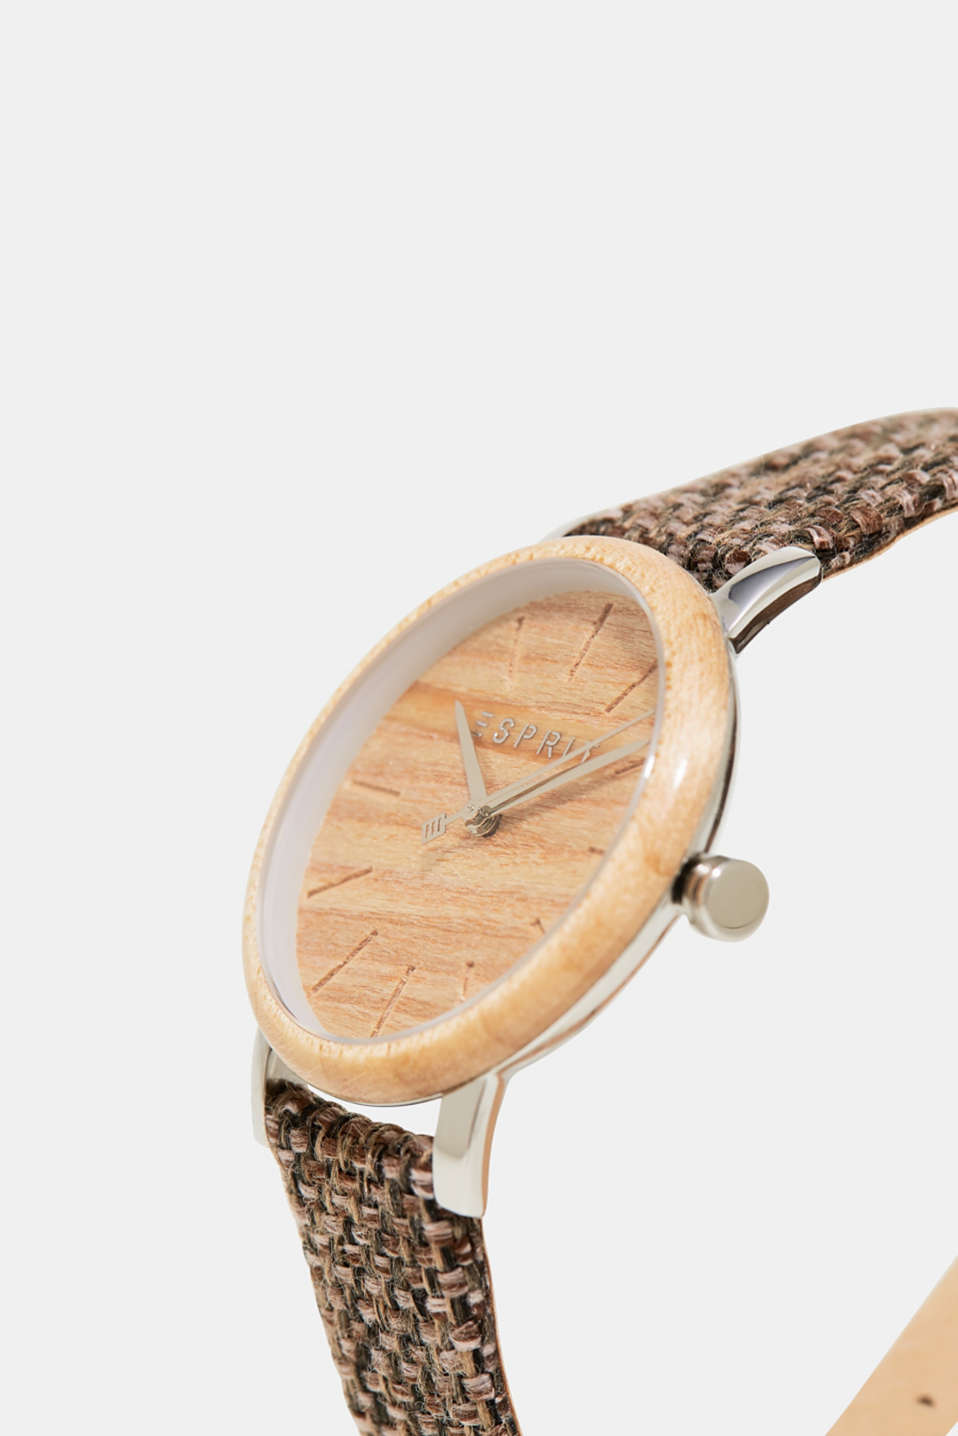 Wood-trim watch + leather strap